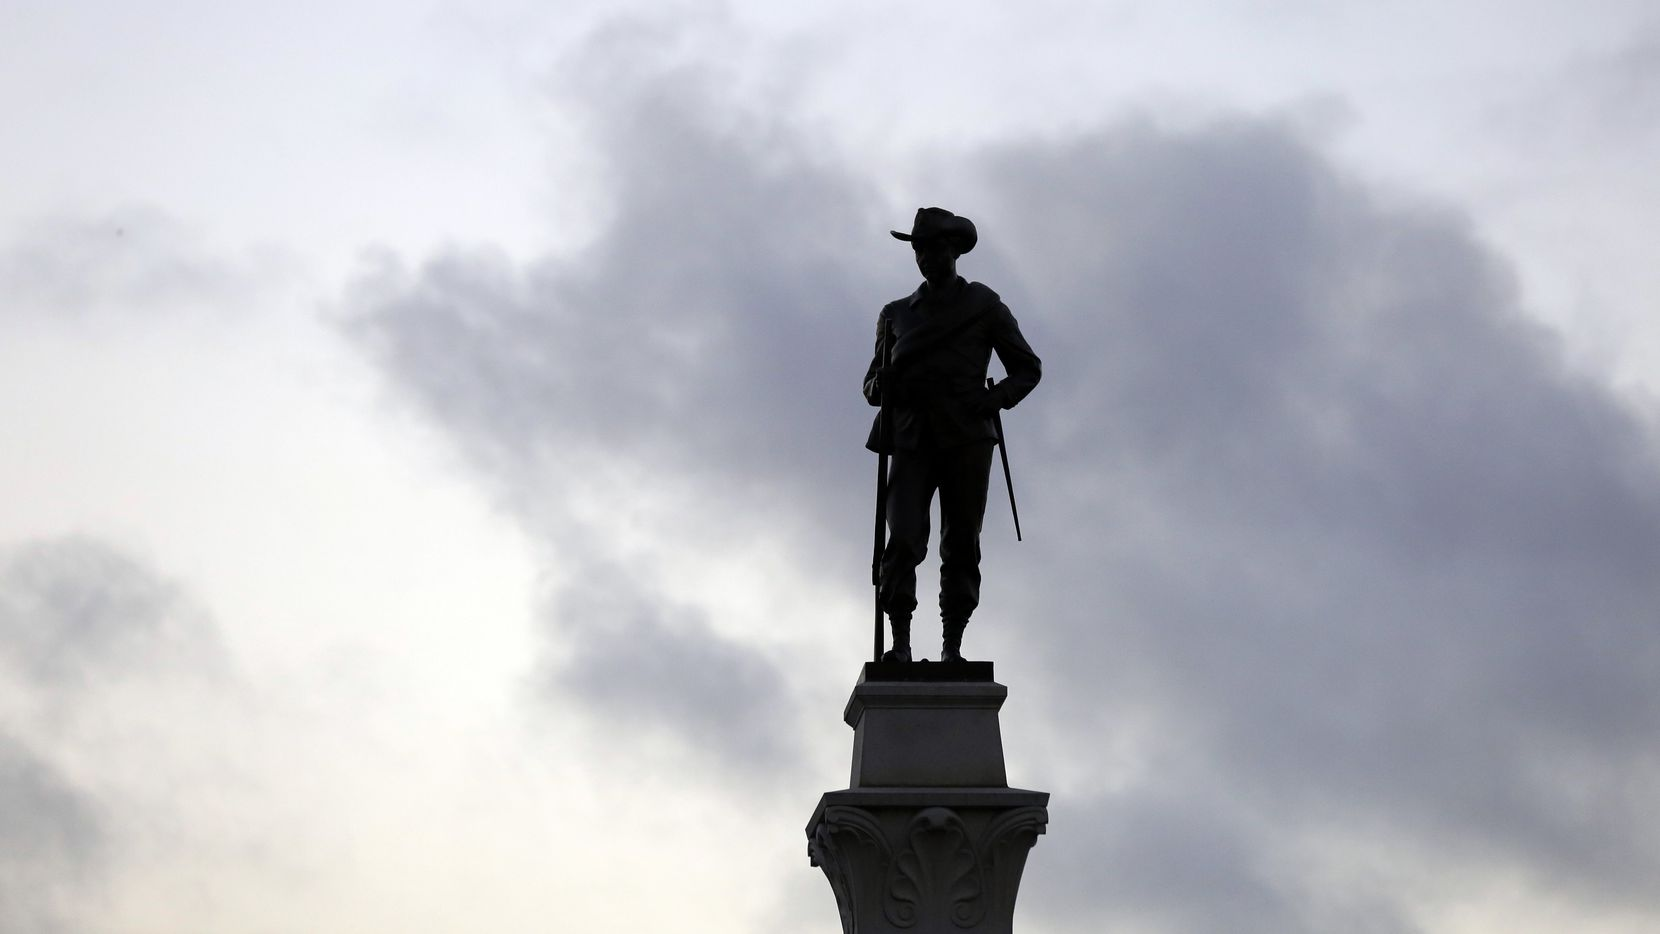 A Confederate soldier statue stands tall on the Texas Brigade monument on the east side of the Capitol in Austin.